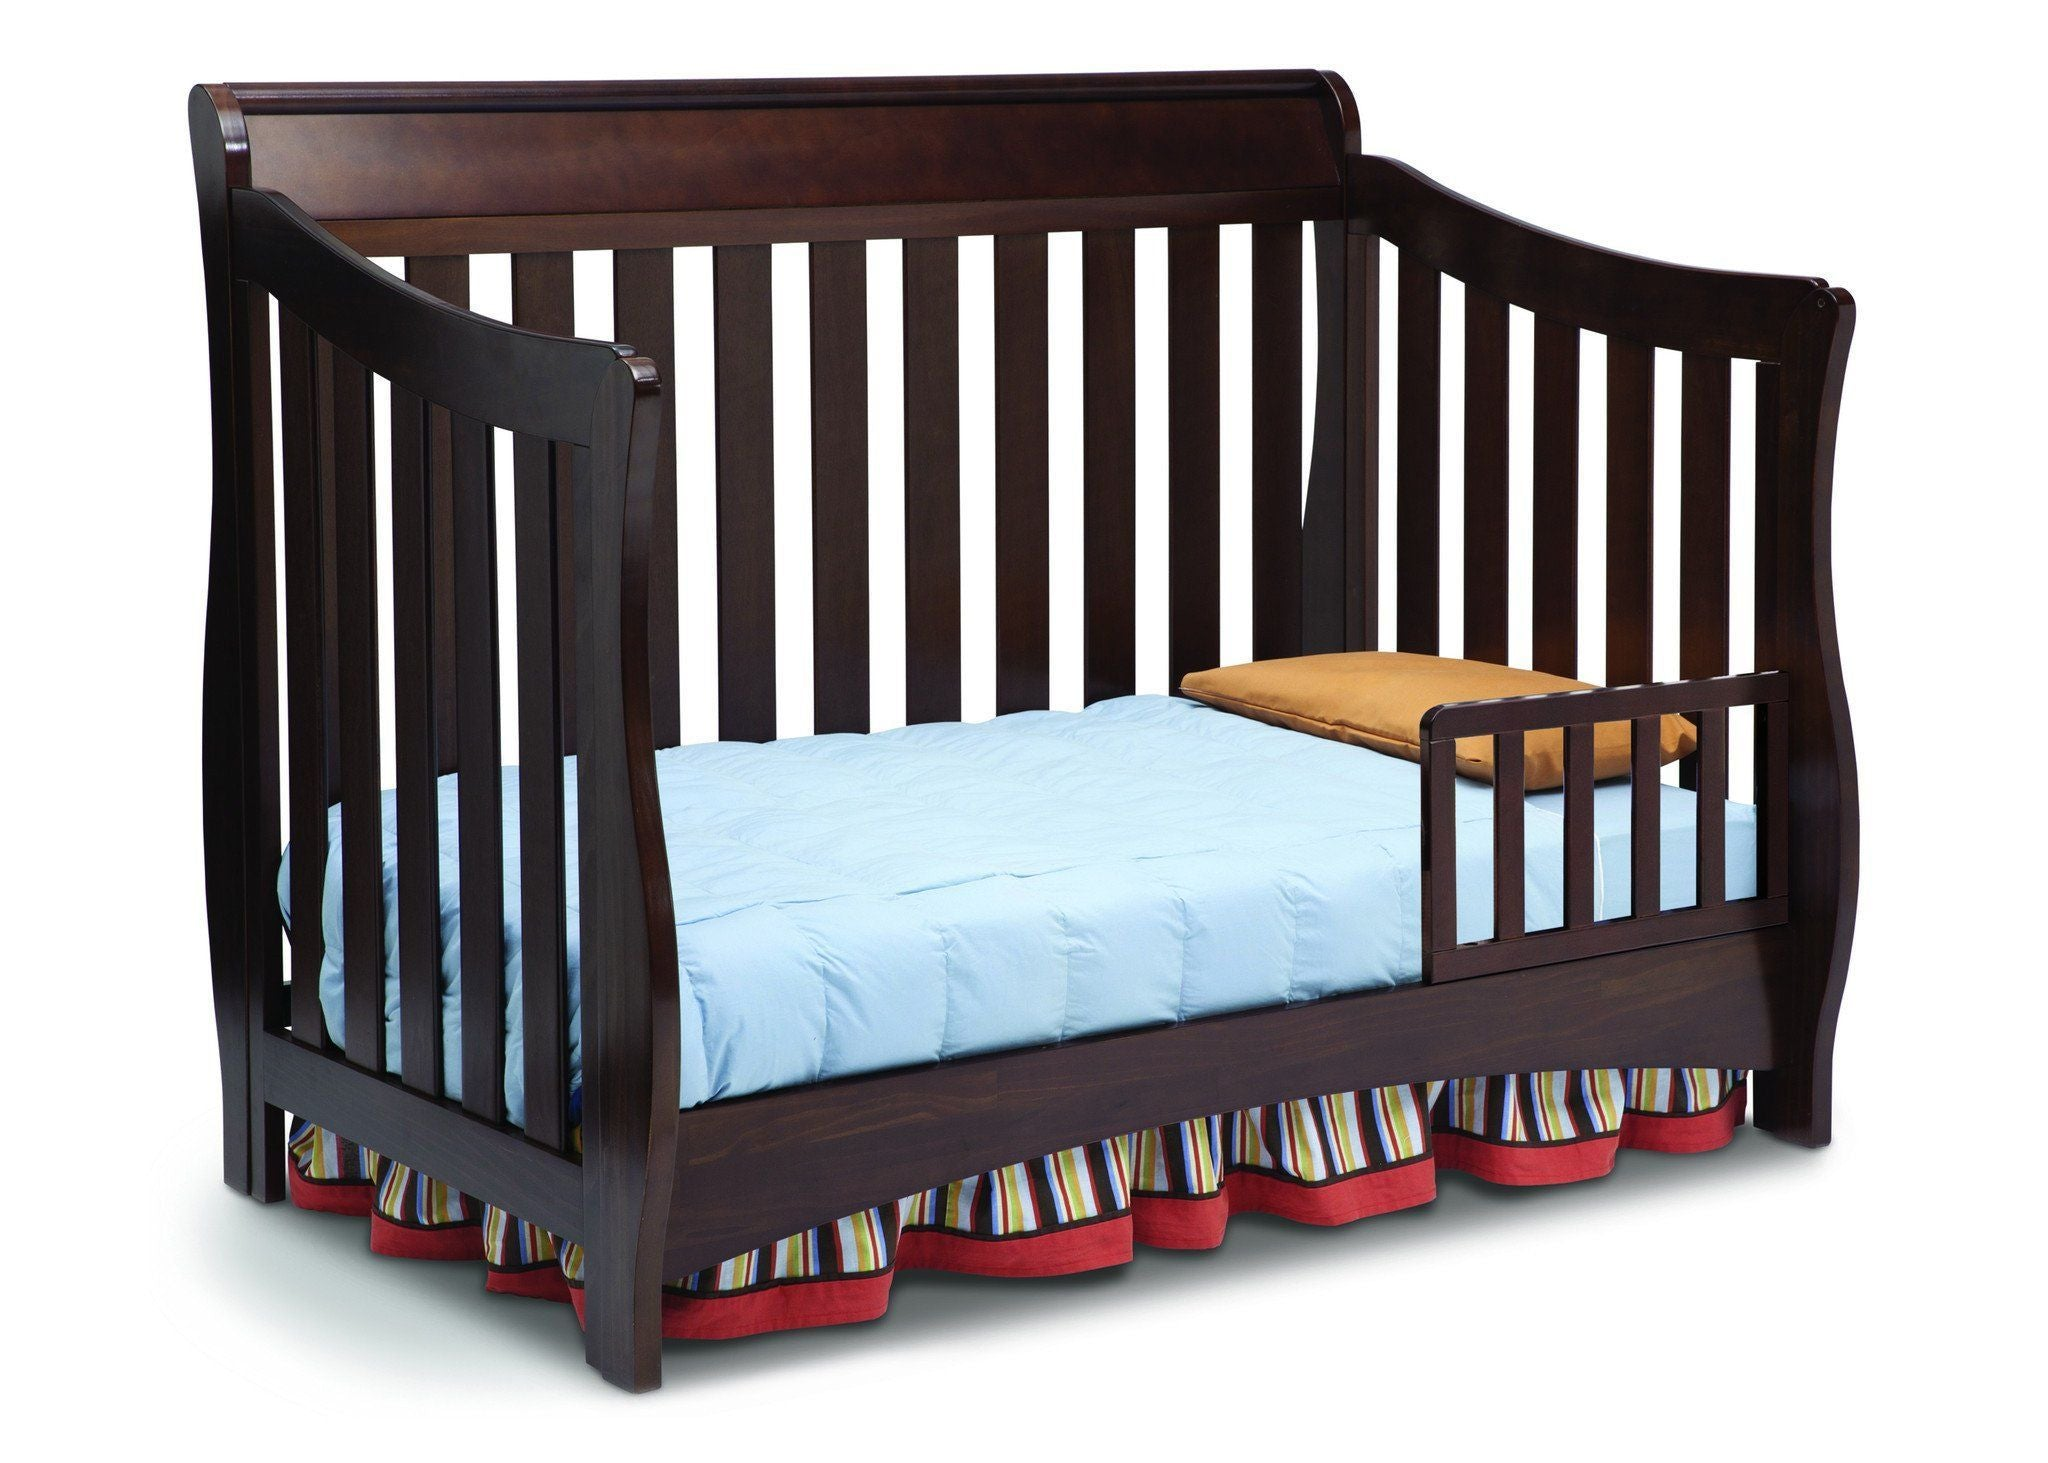 Bentley S Series 4 In 1 Crib Delta Children